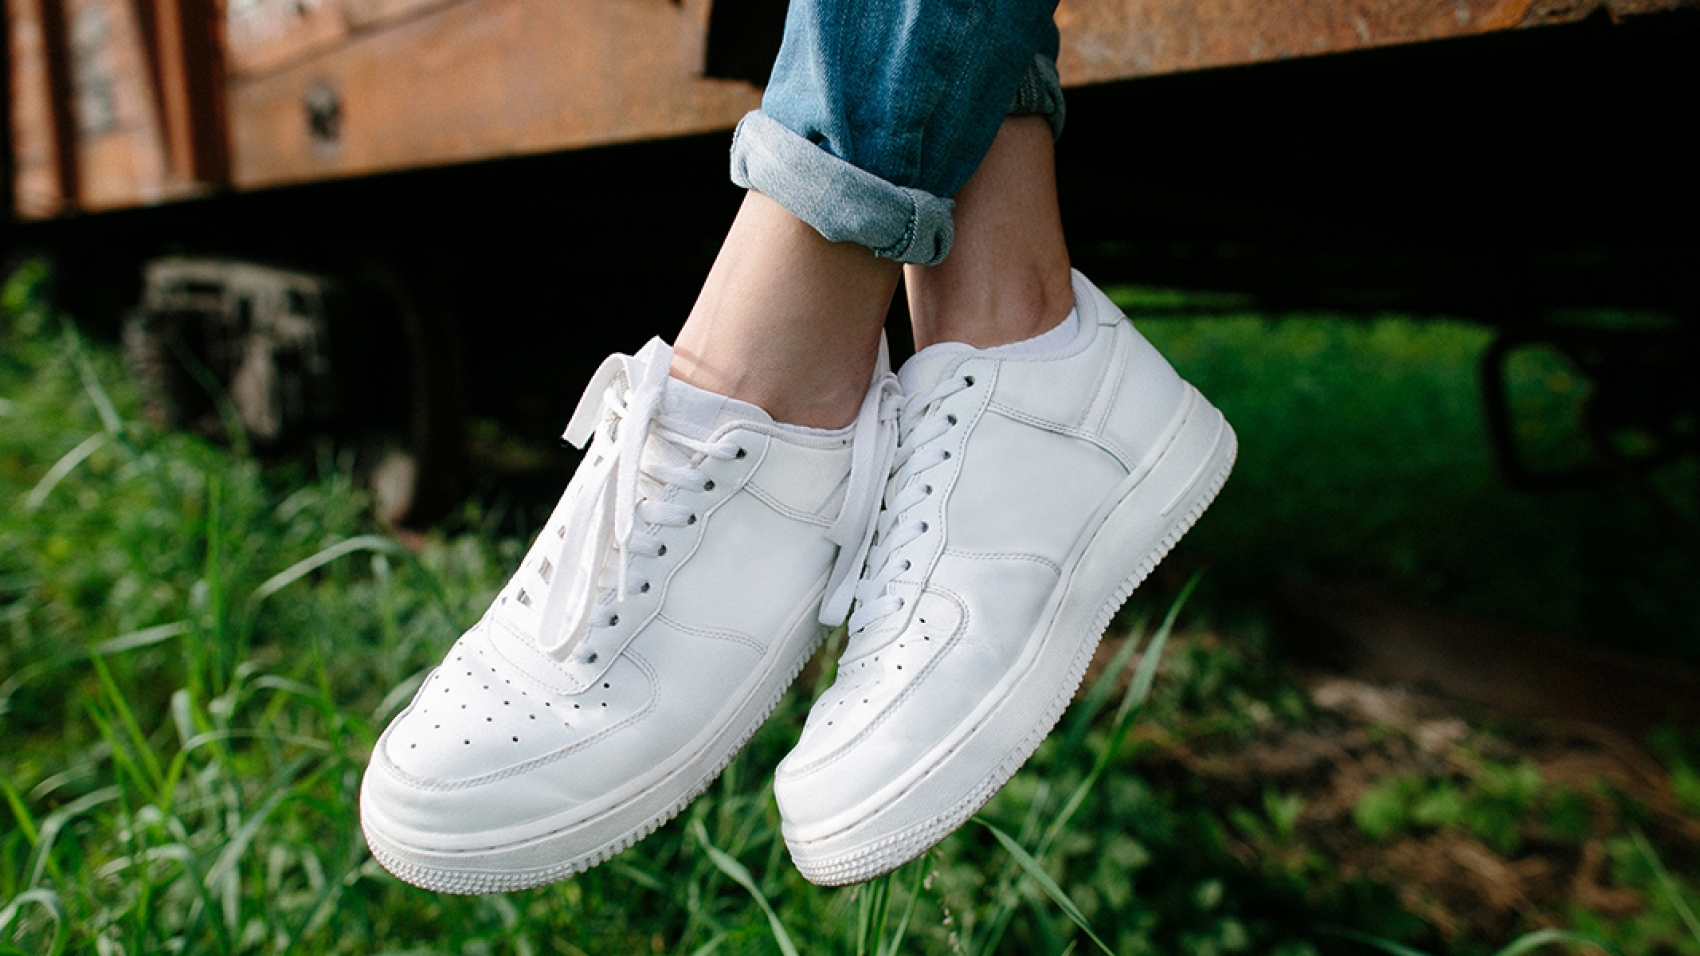 The-Best-White-Sneakers-for-Summer-and-Cute-Outfit-Ideas-for-How-to-Wear-Them